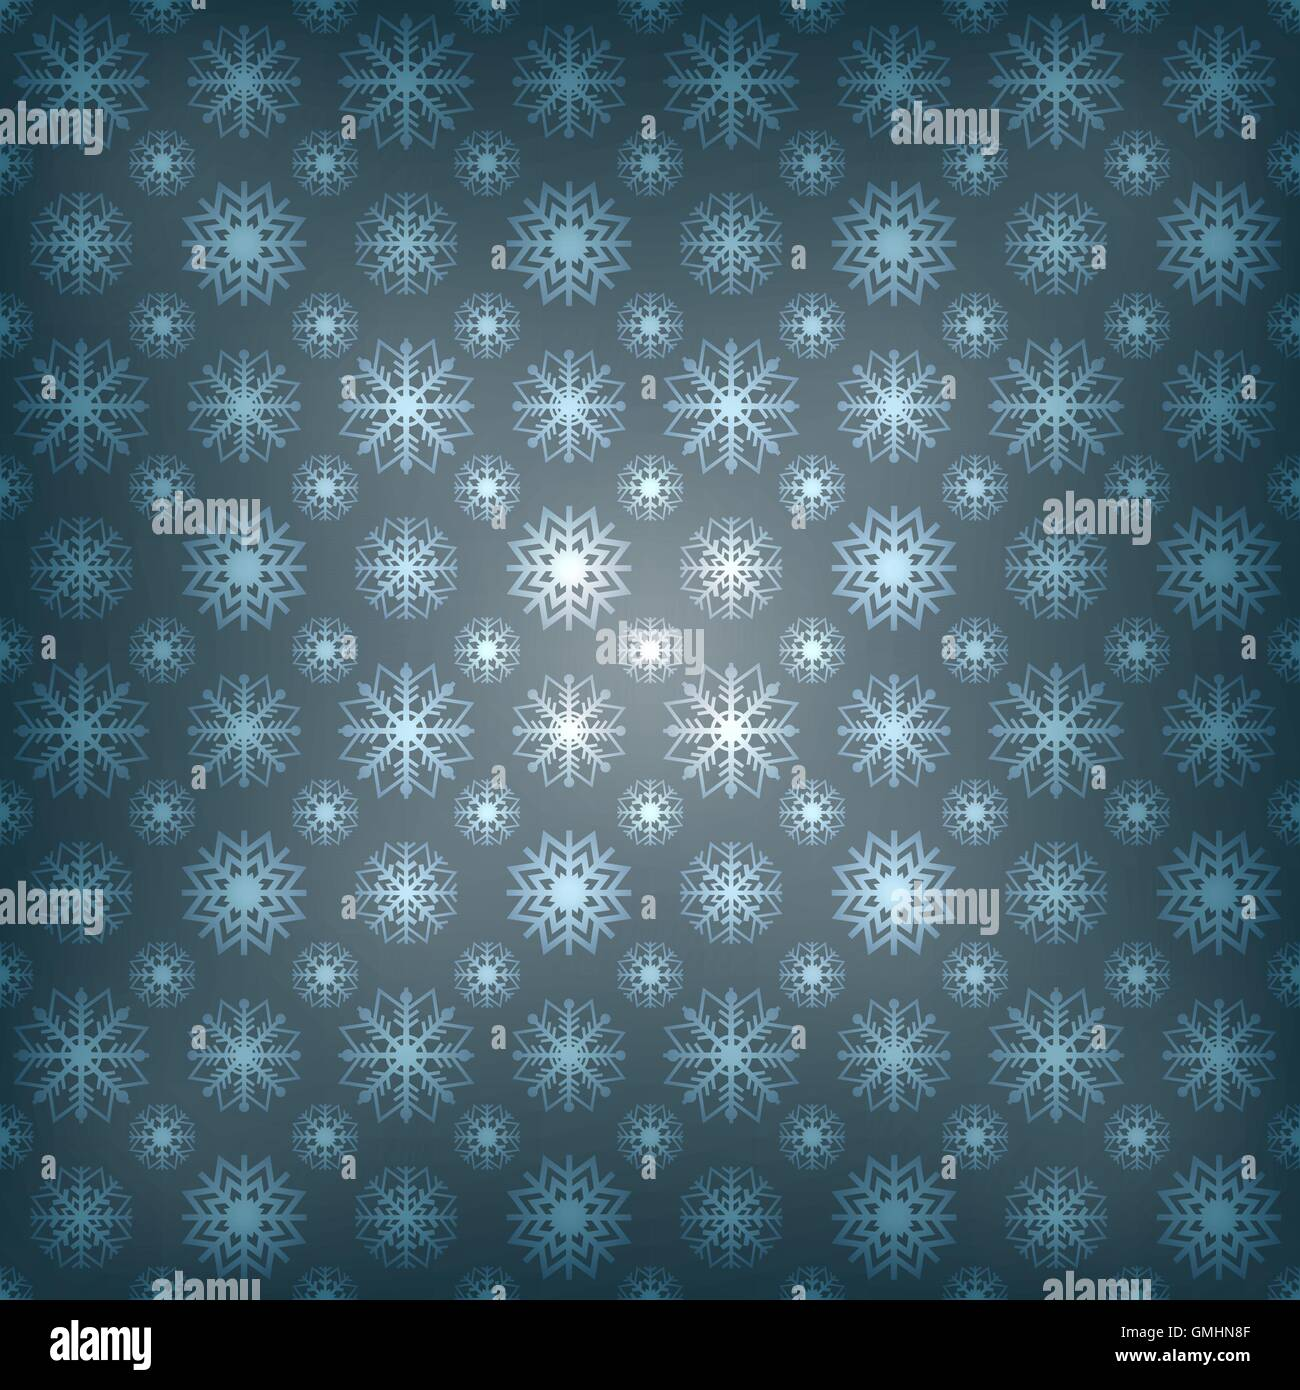 Blurred seamless background image, vector illustration. - Stock Vector